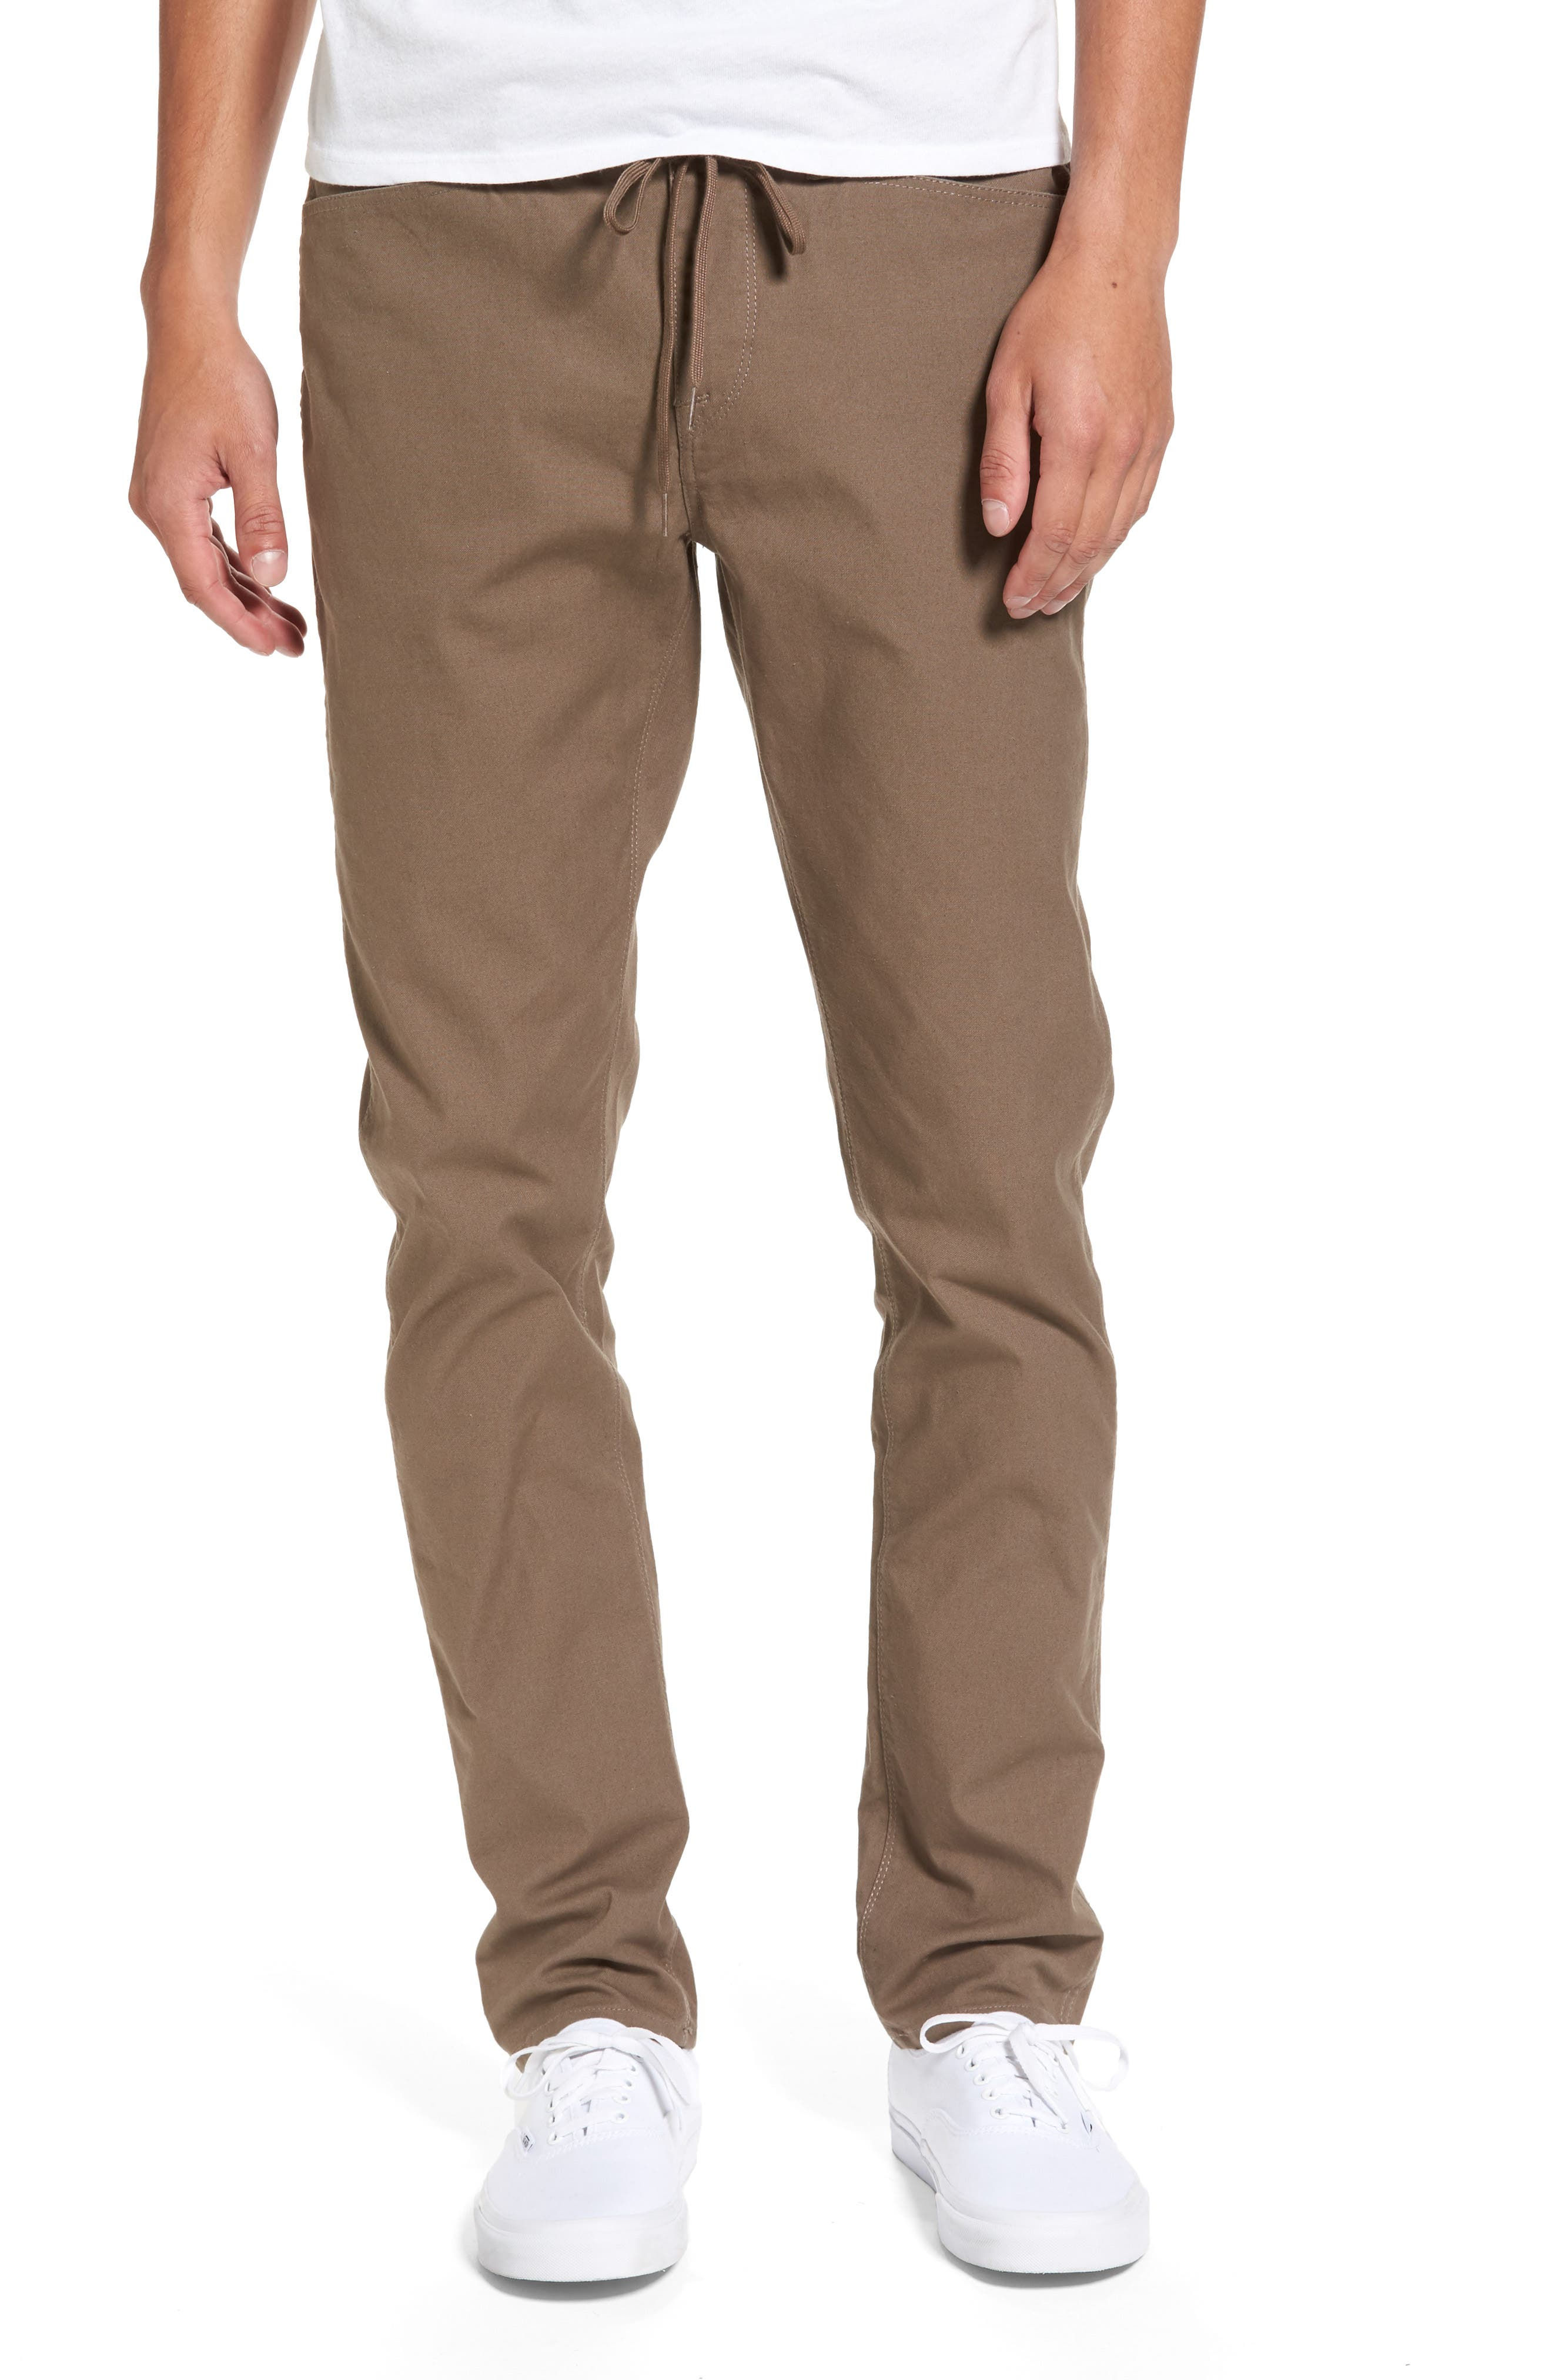 'VSM Gritter' Tapered Chinos,                         Main,                         color, 250